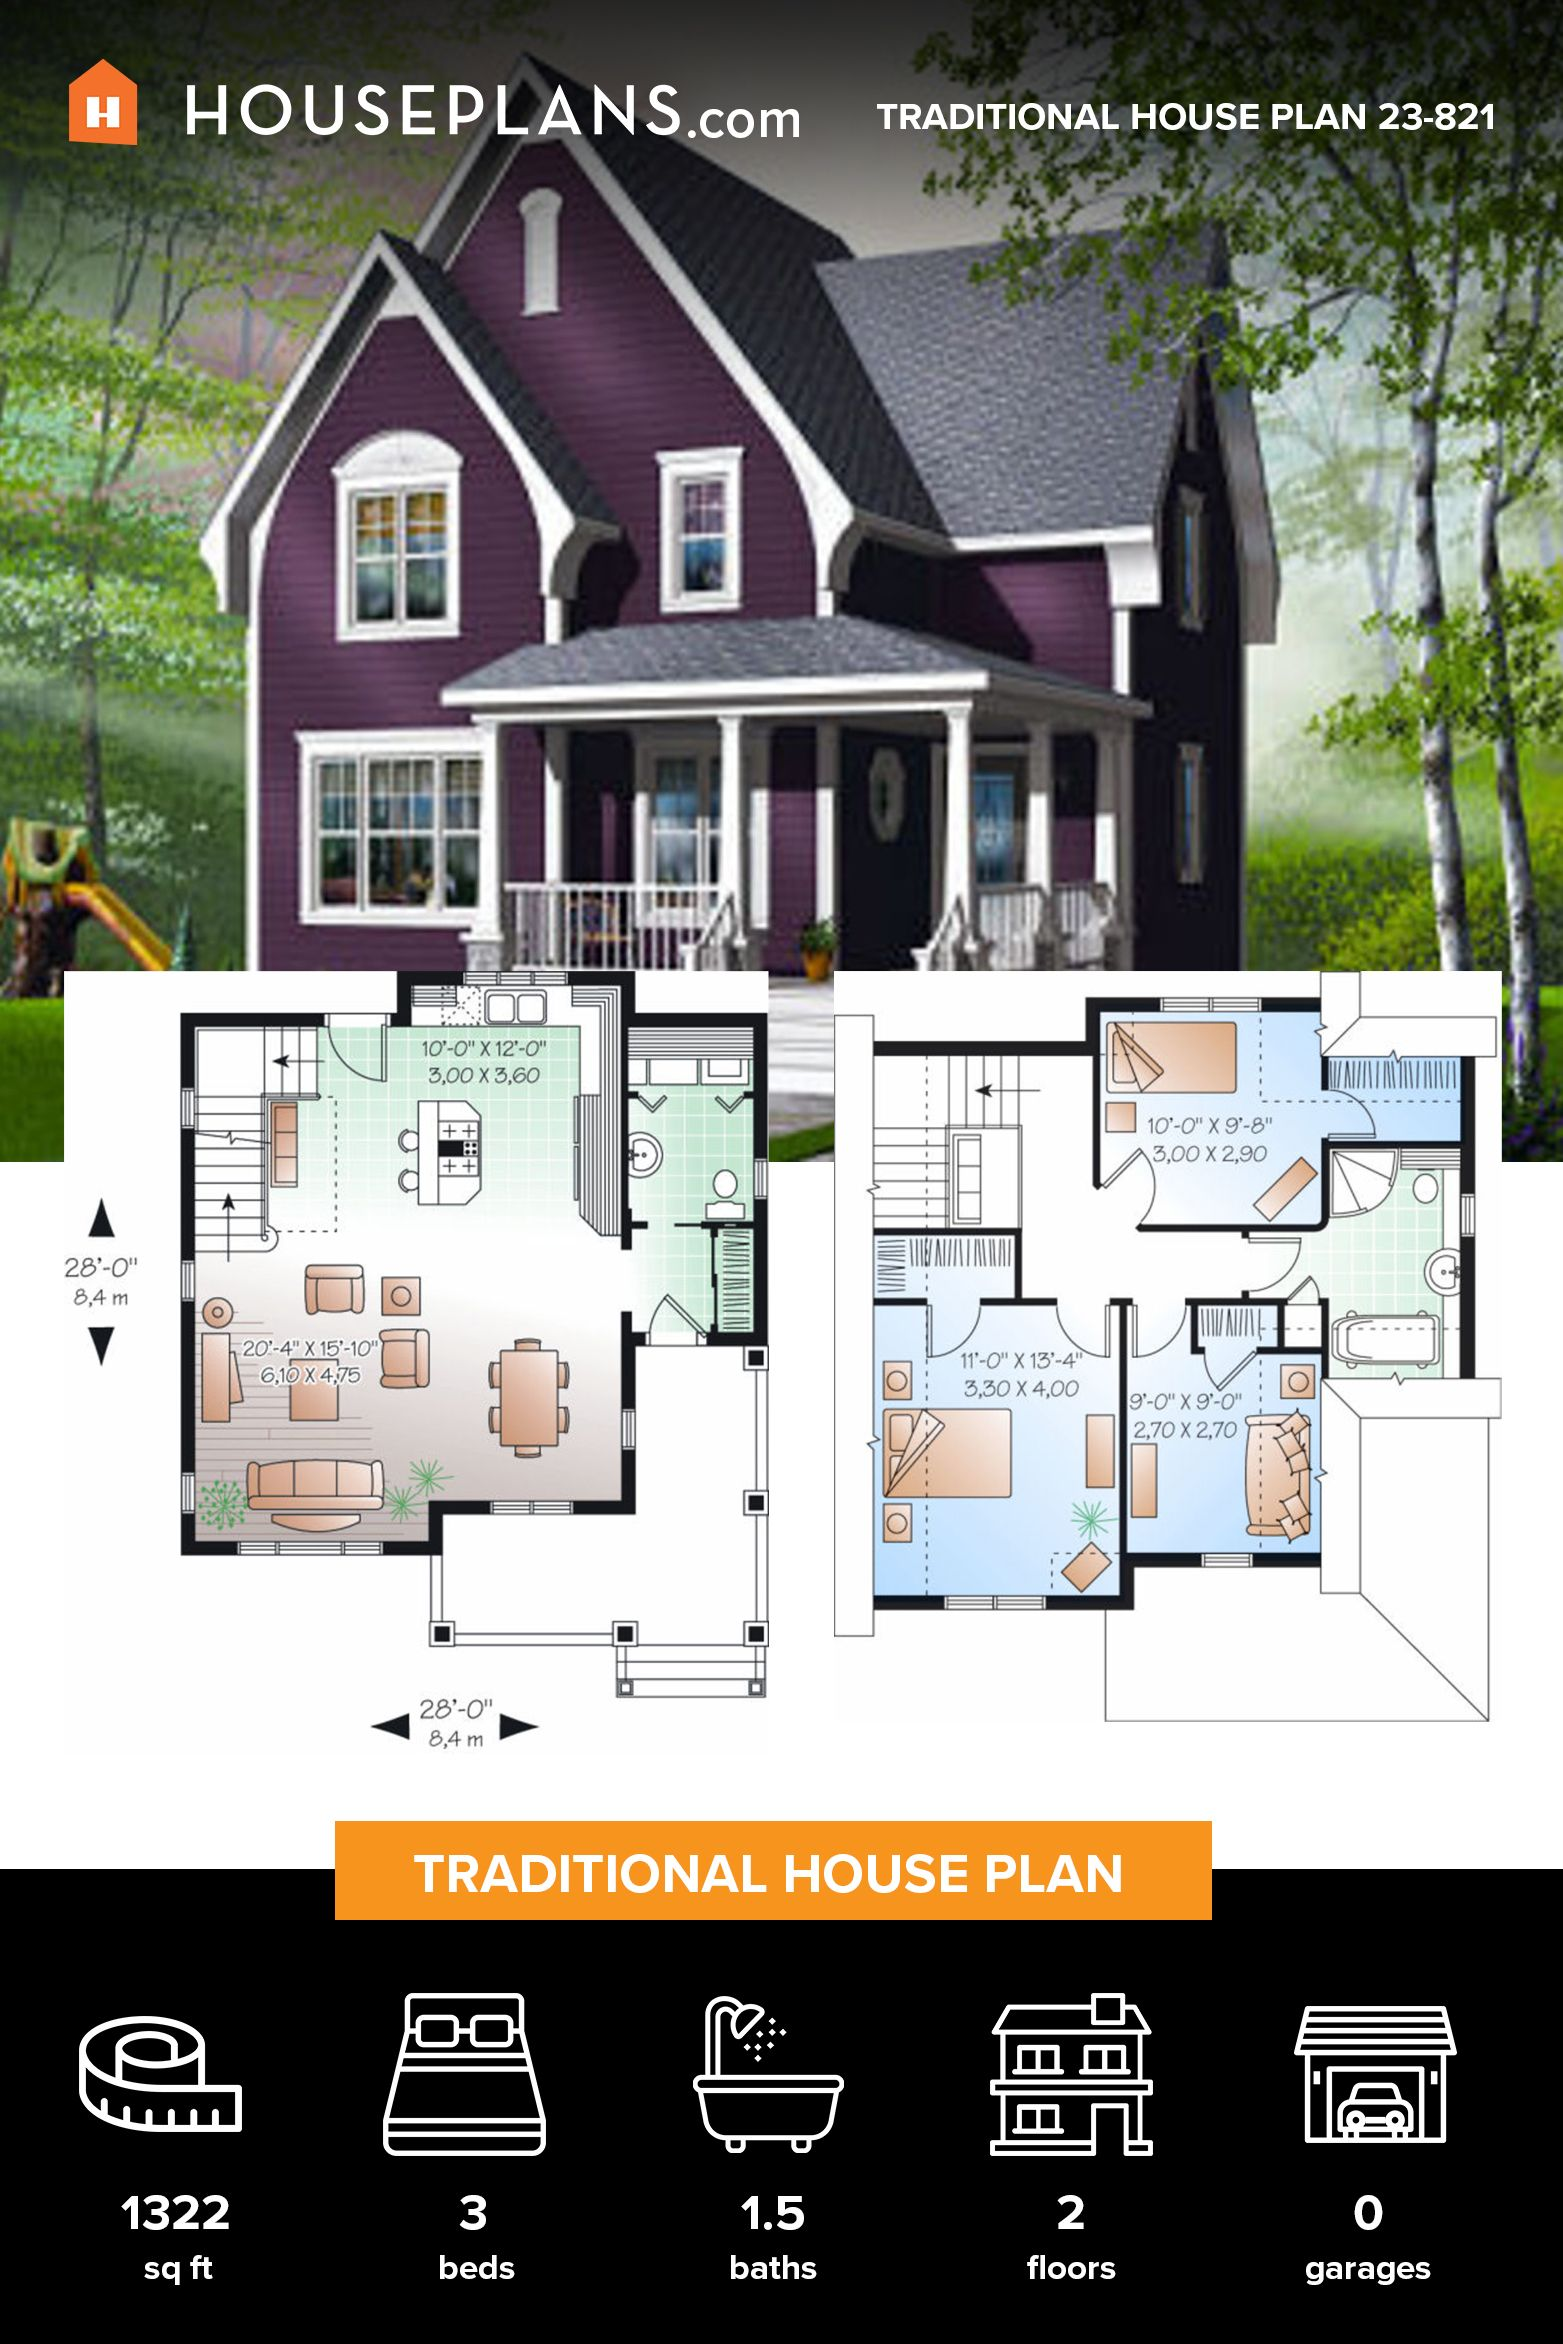 Traditional Style House Plan 3 Beds 1 5 Baths 1322 Sq Ft Plan 23 821 In 2020 House Plans Traditional House Plans Small House Floor Plans